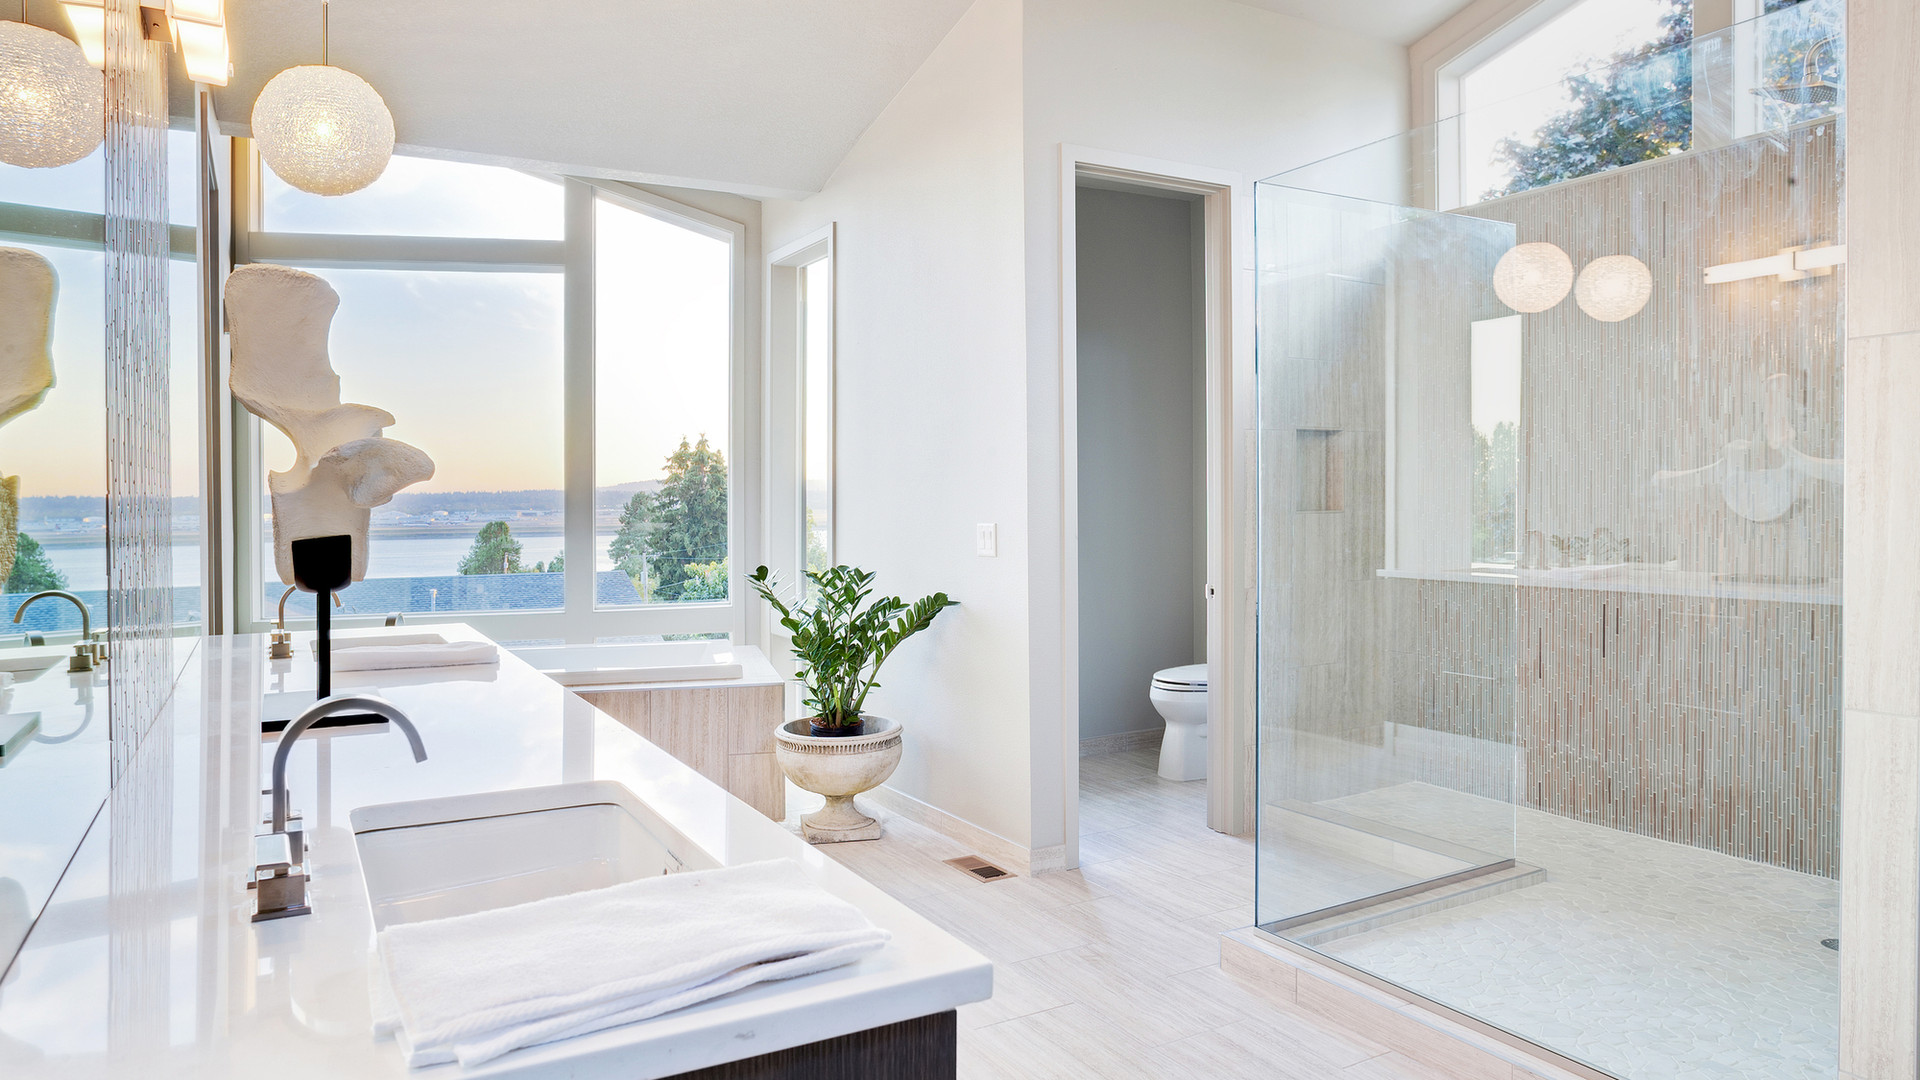 luxury-bathroom-27239366.jpg